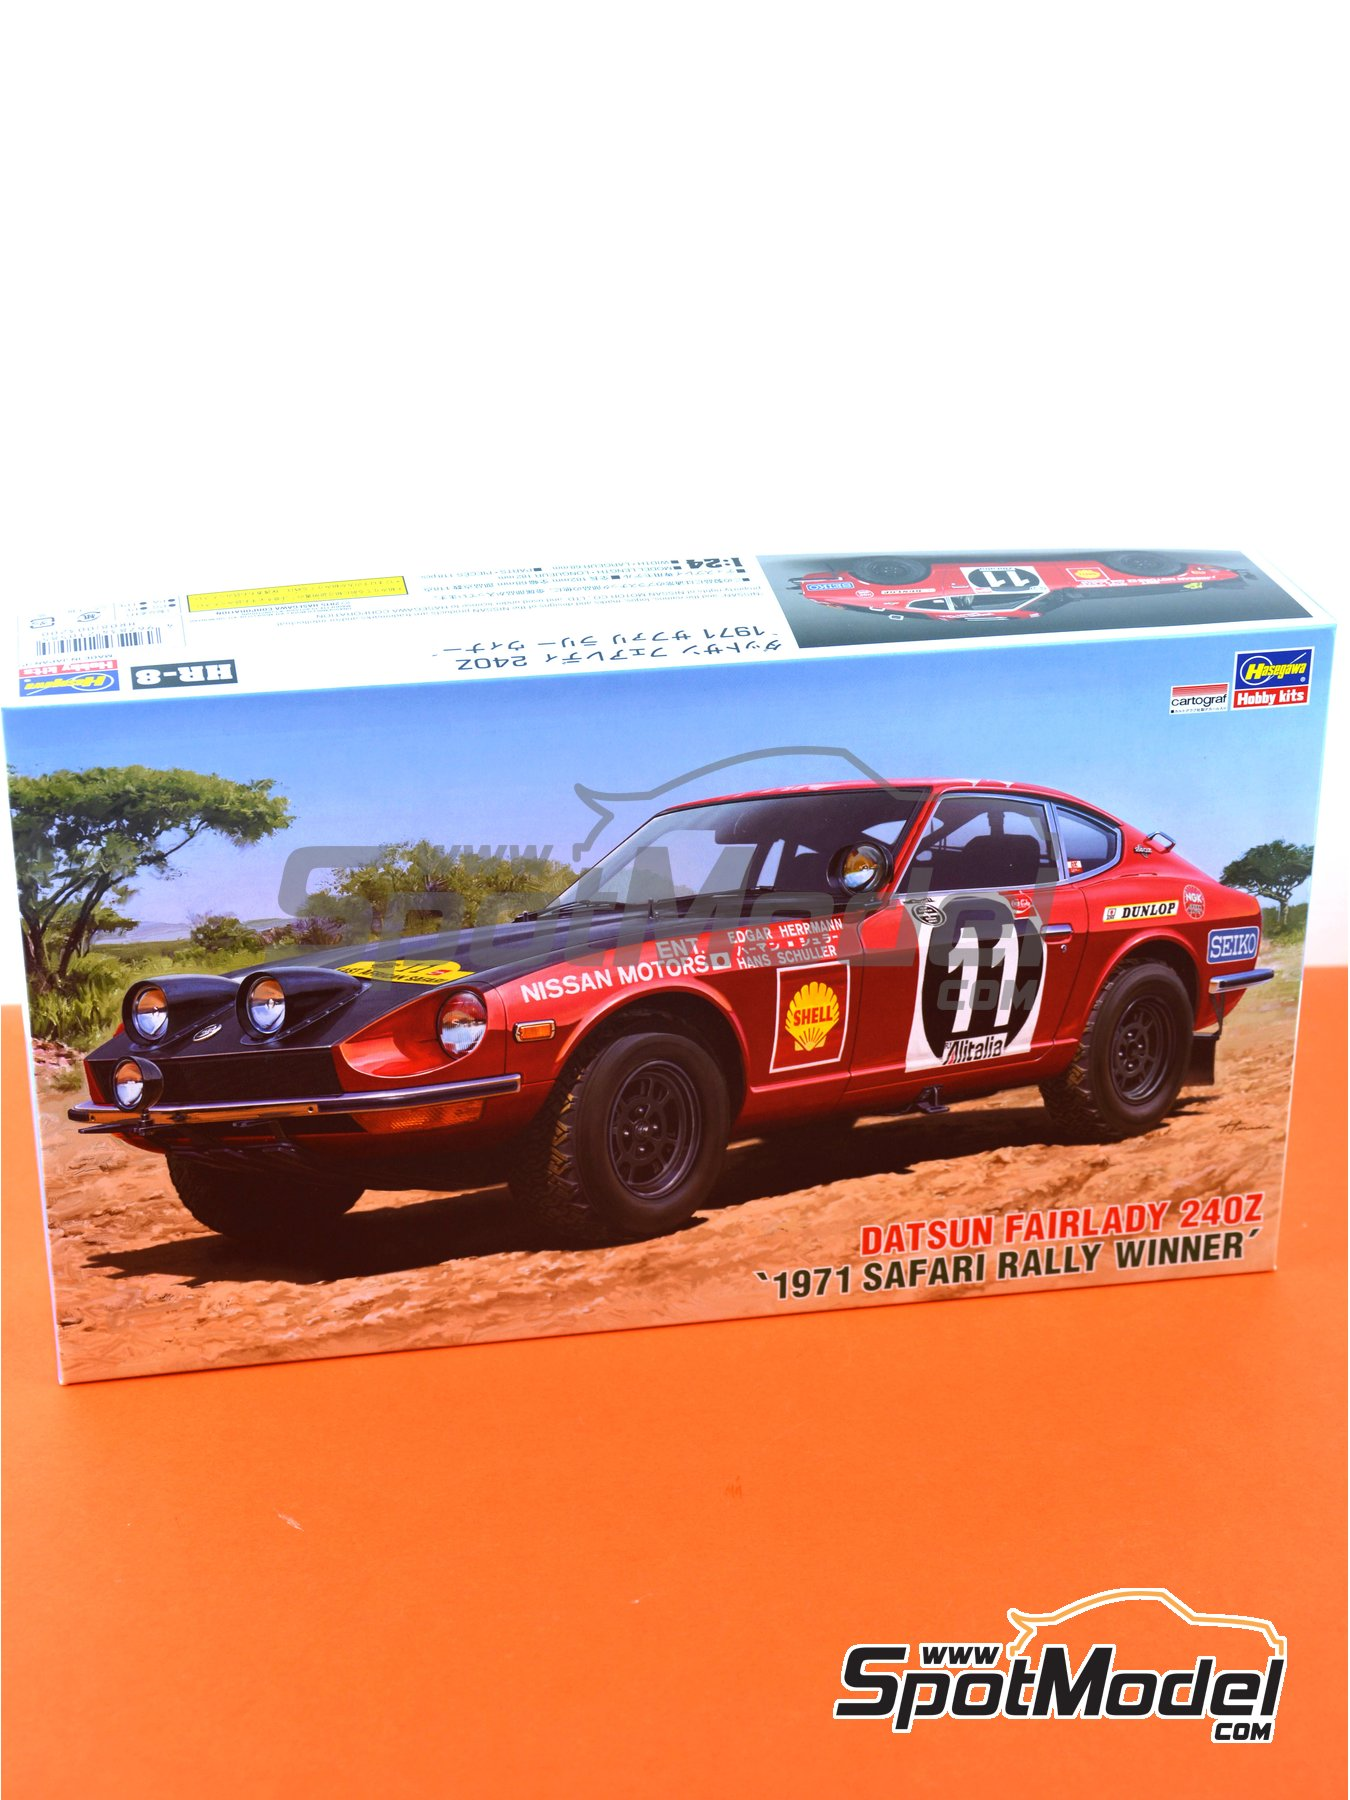 Datsun Fairlady 240Z Nissan Motors - Safari Rally 1971 | Model car kit in 1/24 scale manufactured by Hasegawa (ref. 21268) image